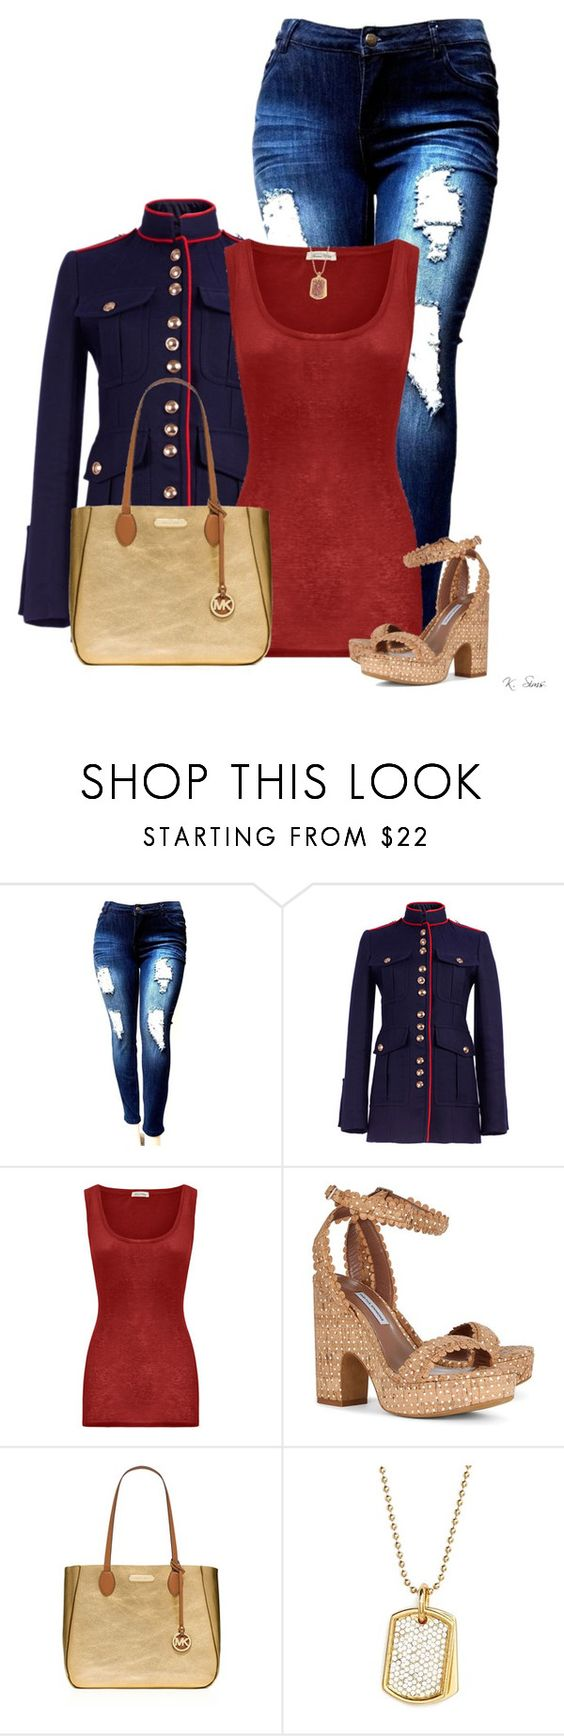 """Love this jacket"" by ksims-1 ❤ liked on Polyvore featuring Burberry, American Vintage, Tabitha Simmons, MICHAEL Michael Kors and Stella Valle"